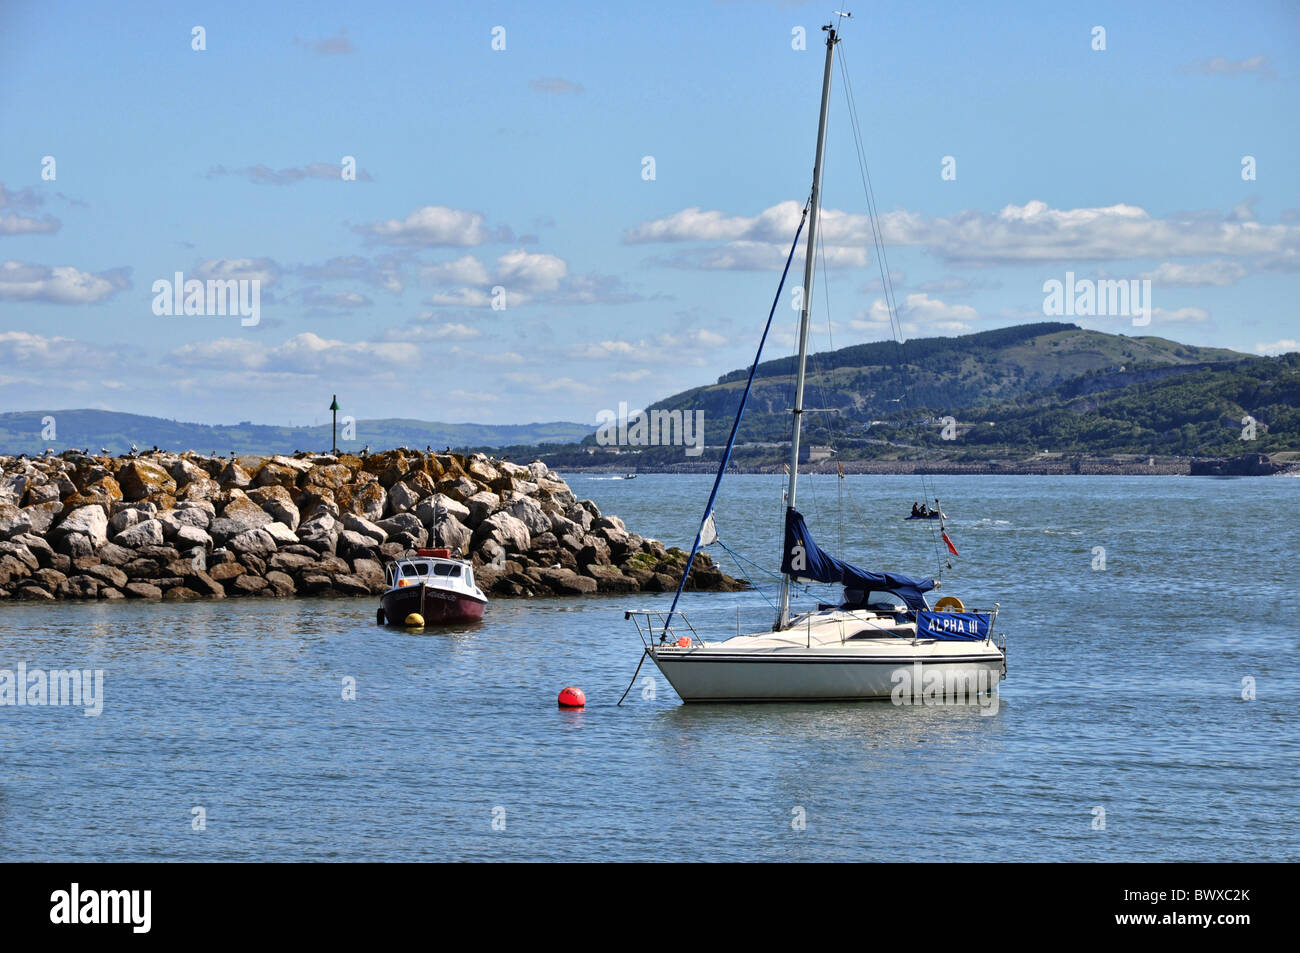 A yacht at anchor in Rhos-on-Sea, North Wales, UK - Stock Image